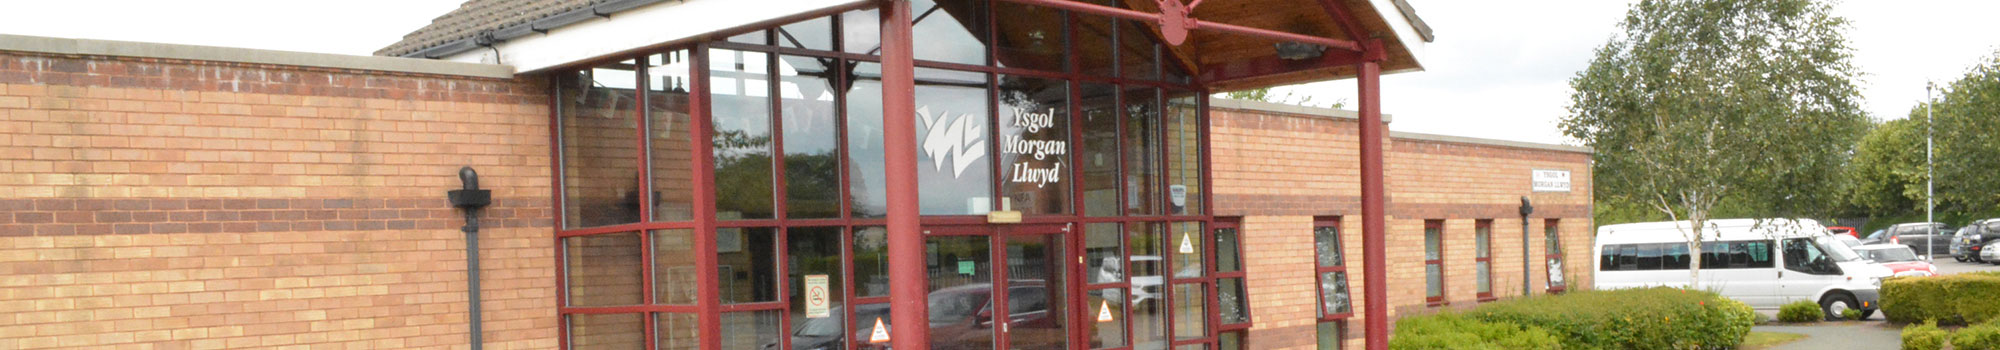 Pupils and facilities at Ysgol Morgan Llwyd in Wrexham